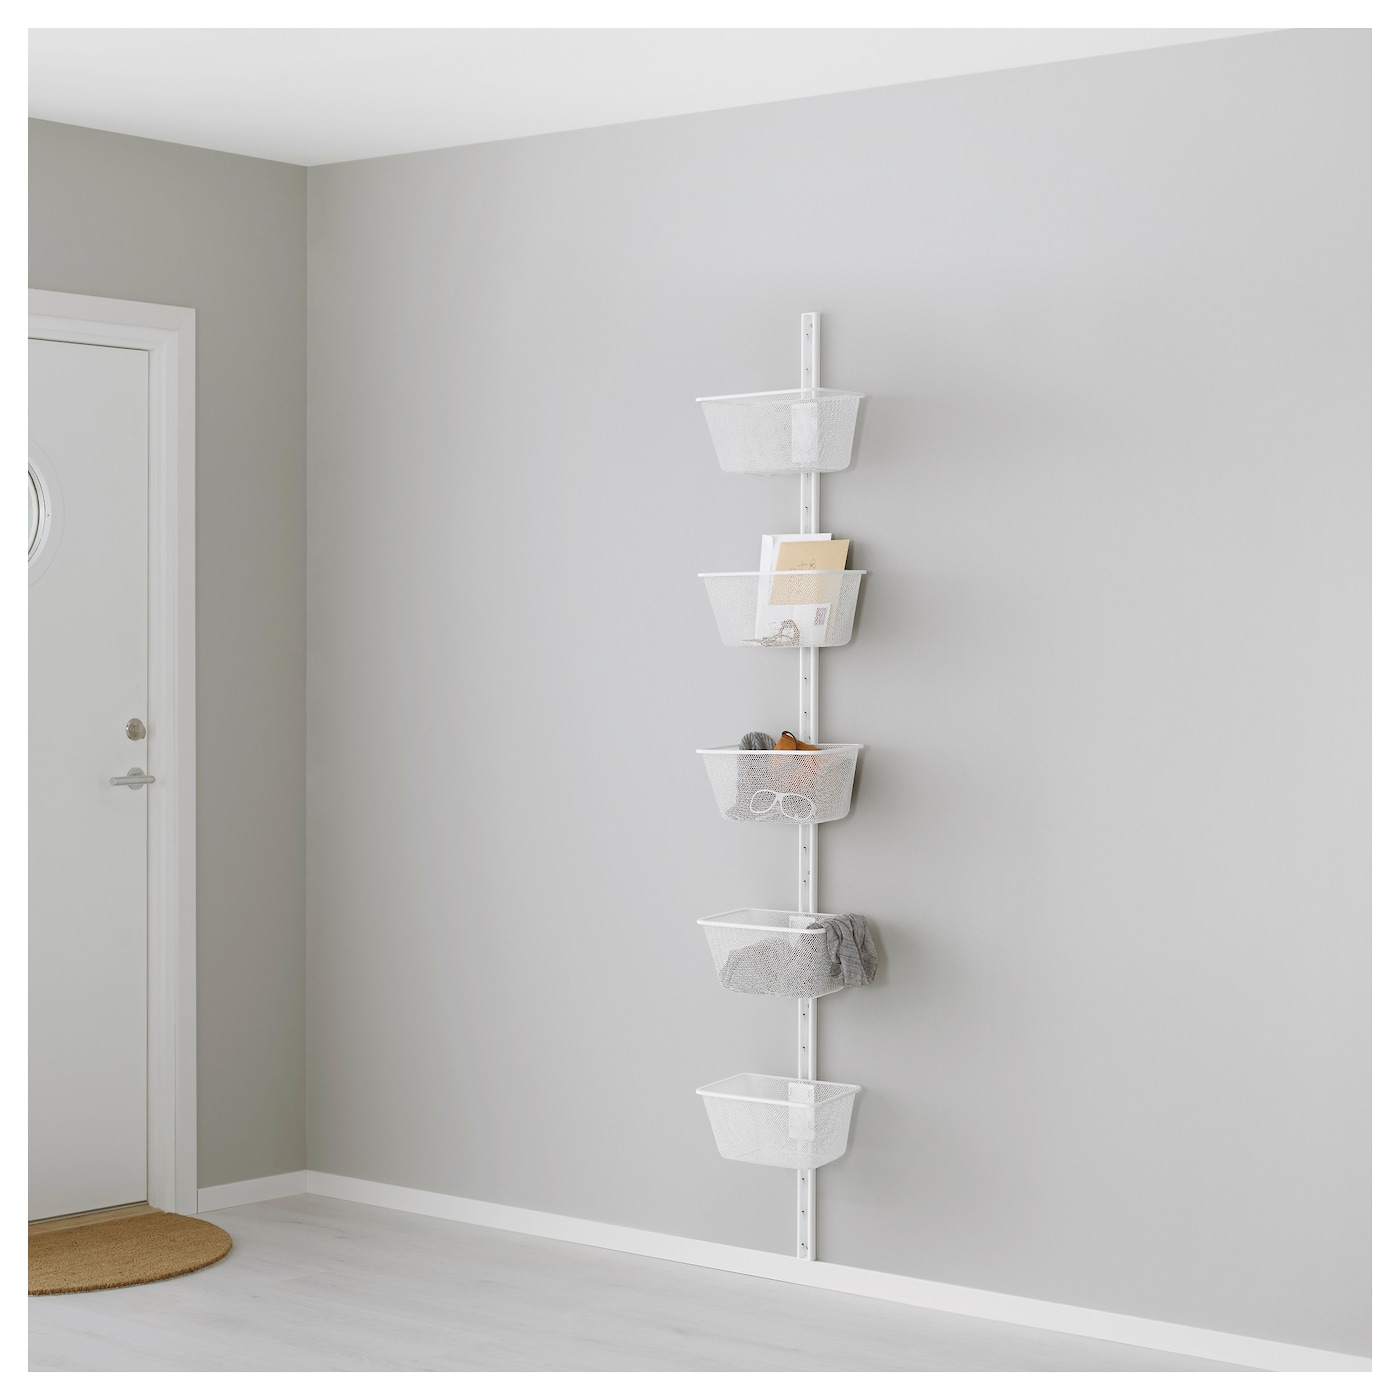 IKEA ALGOT wall upright/basket Can also be used in bathrooms and other damp areas indoors.